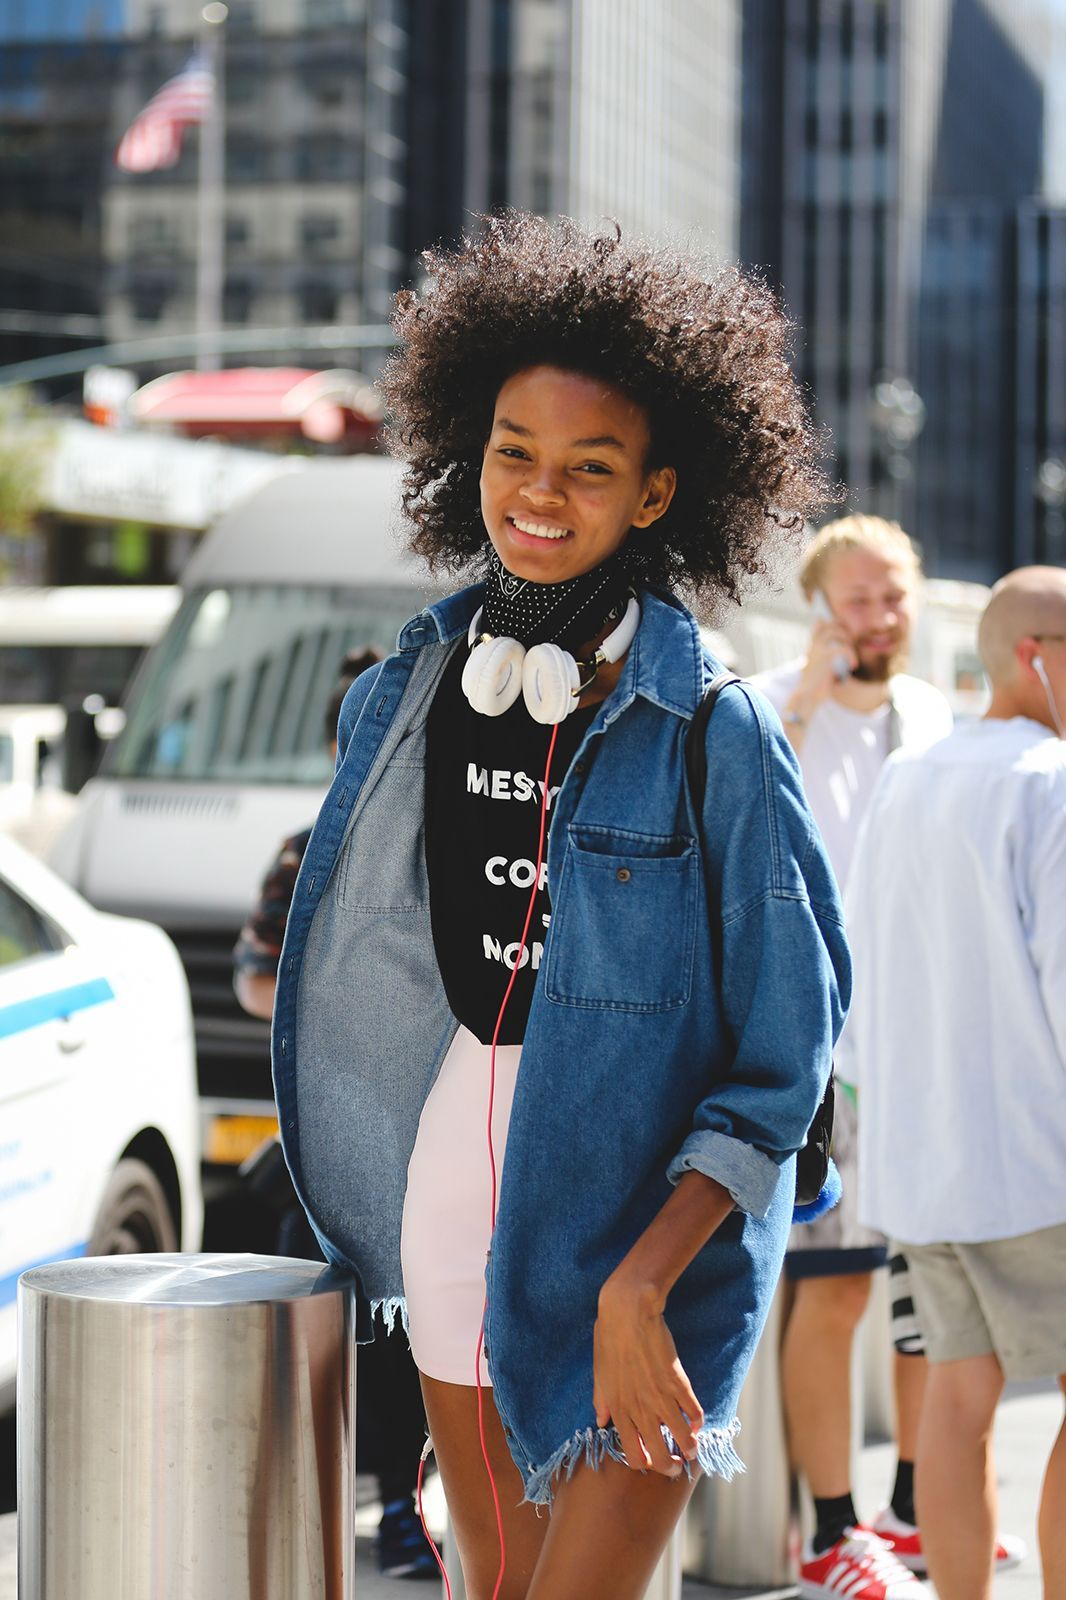 Beauty Street Style From NYFW: 20 Looks That Caught OurEye